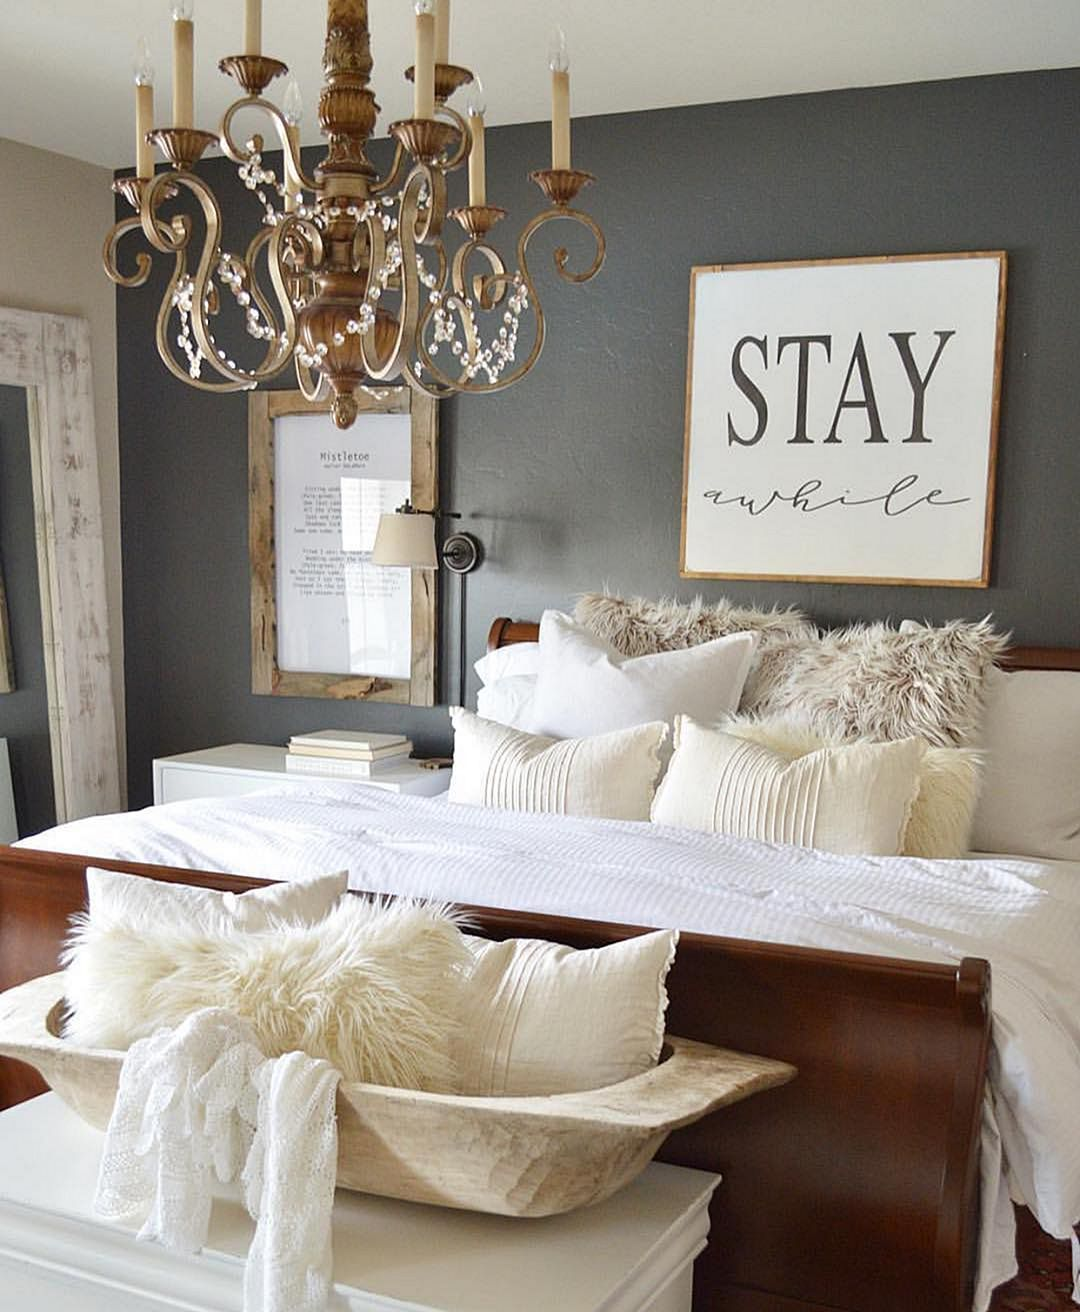 137 diy rustic and romantic master bedroom ideas on a - Diy romantic bedroom ideas ...